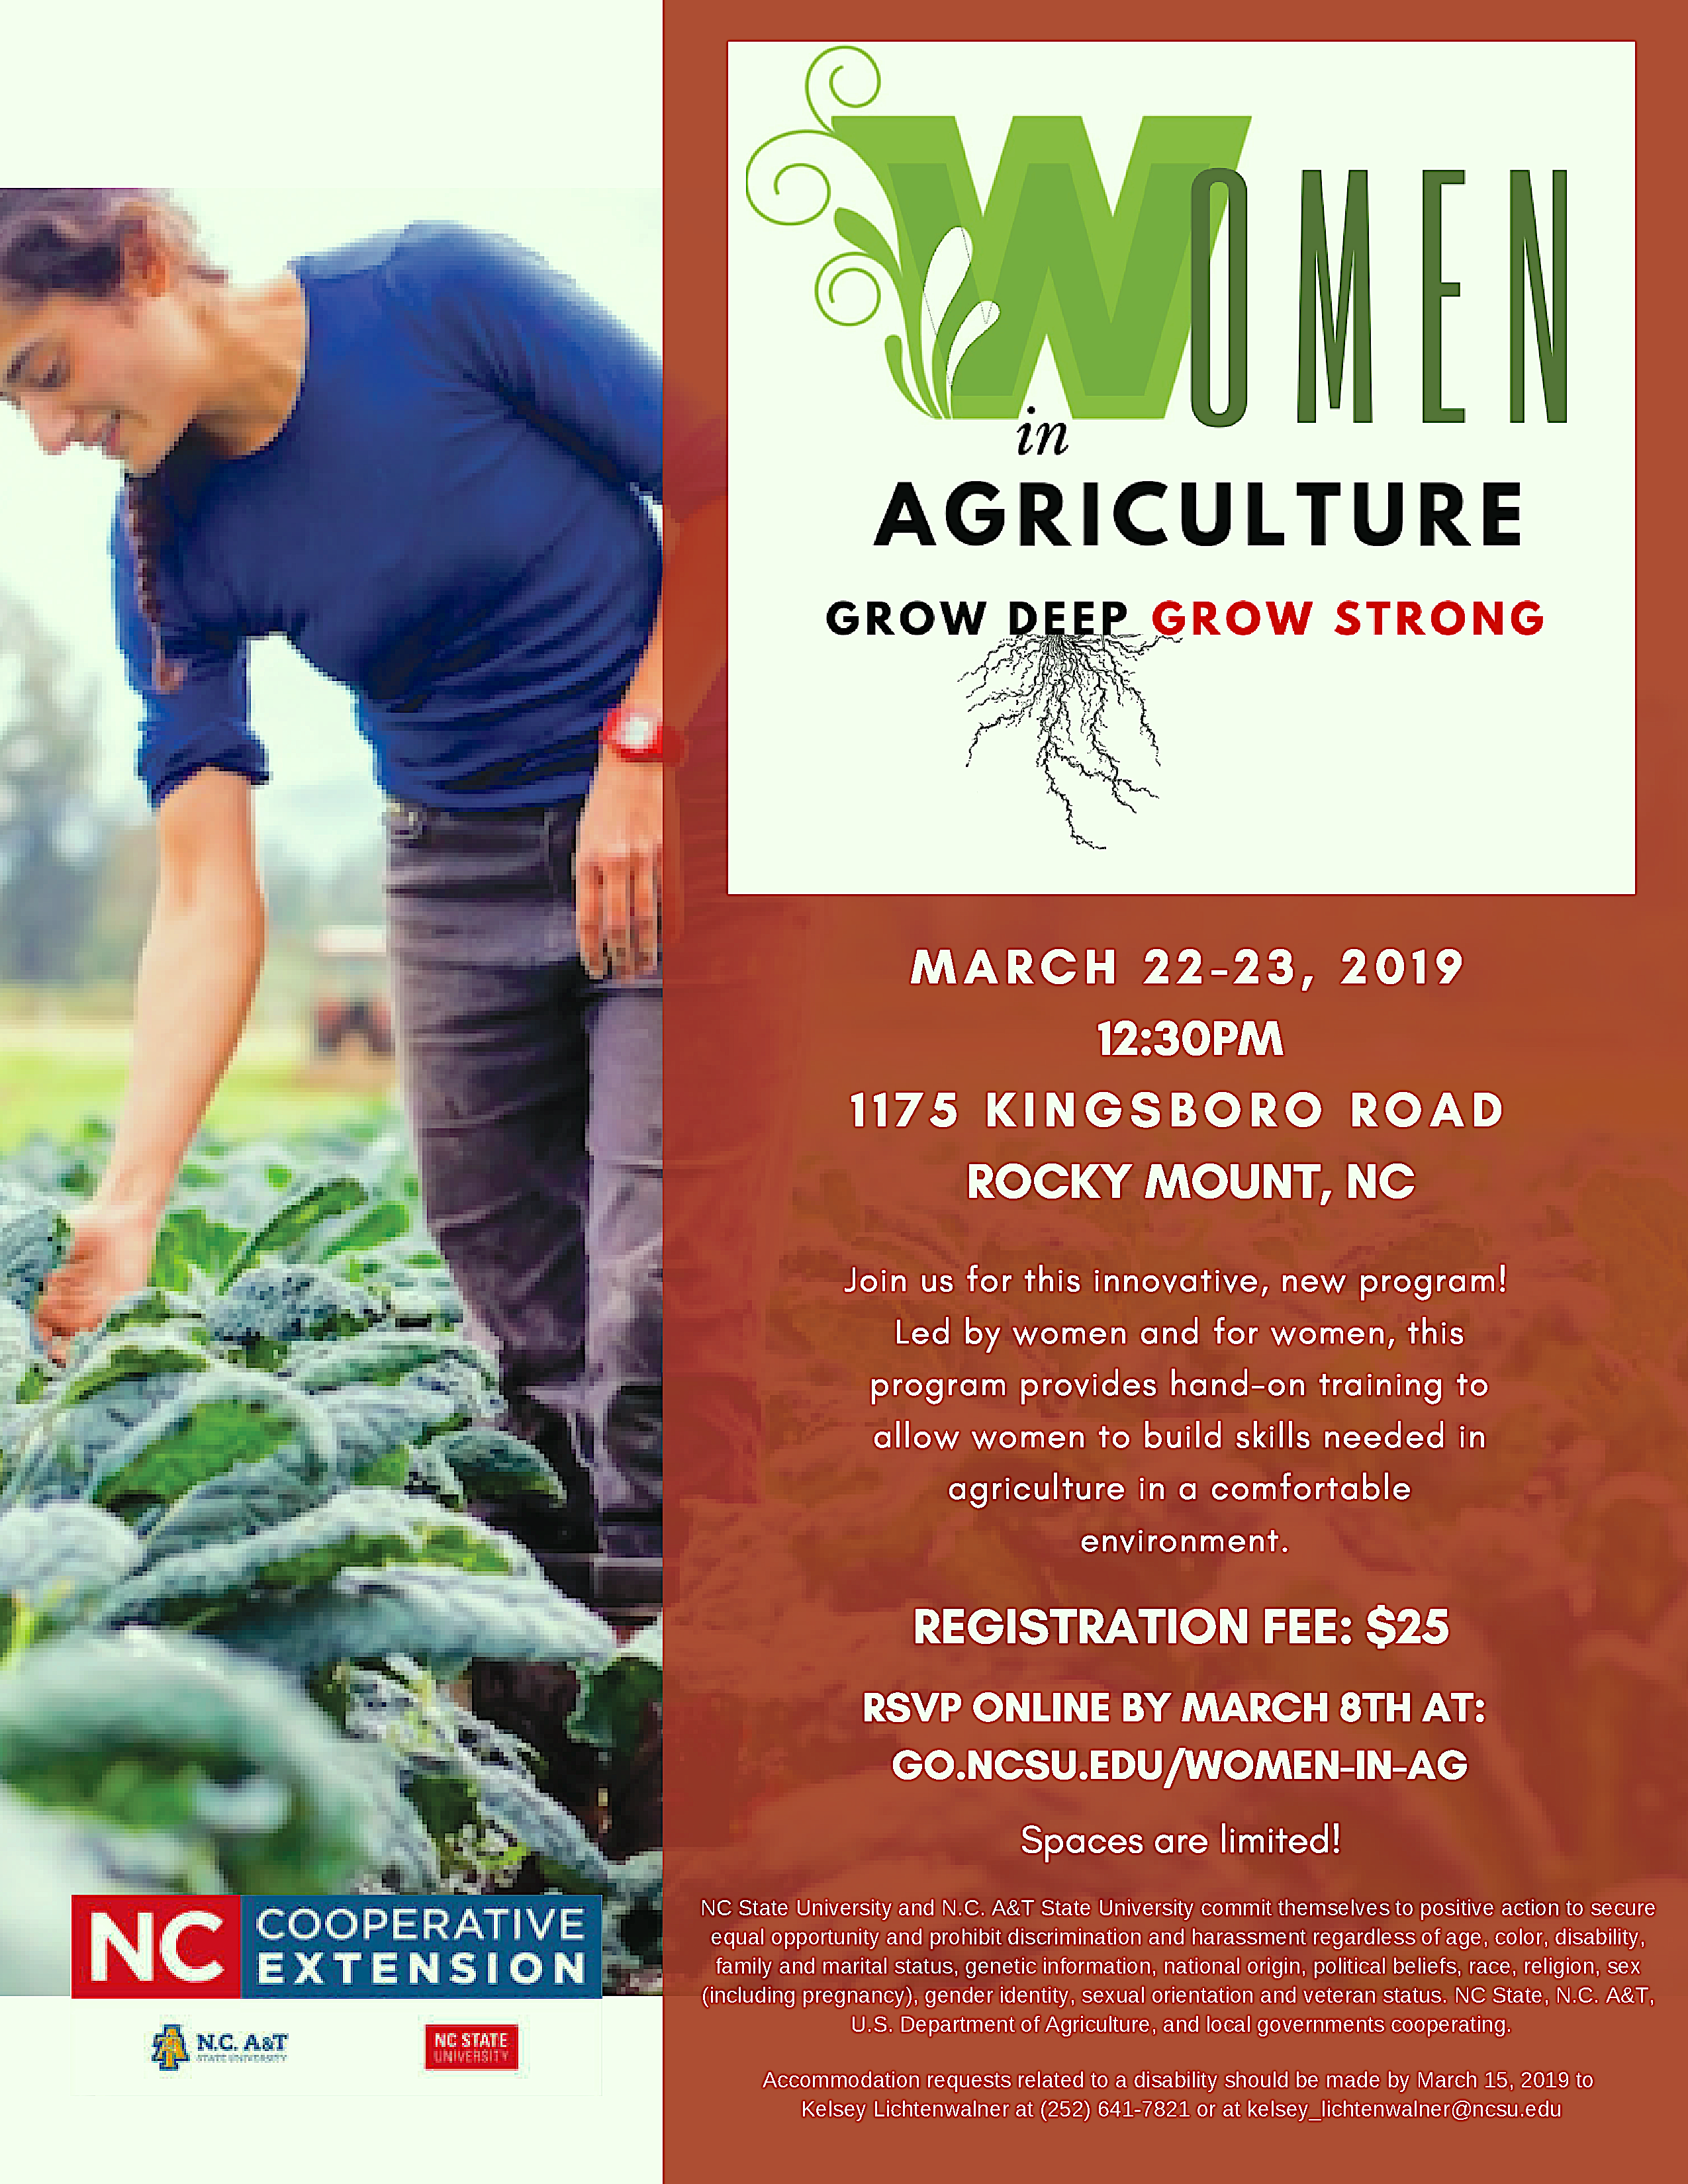 WOMEN IN AG MEETING INFORMATIONAL FLYER WITH PICTURE OF WOMAN IN A GARDEN